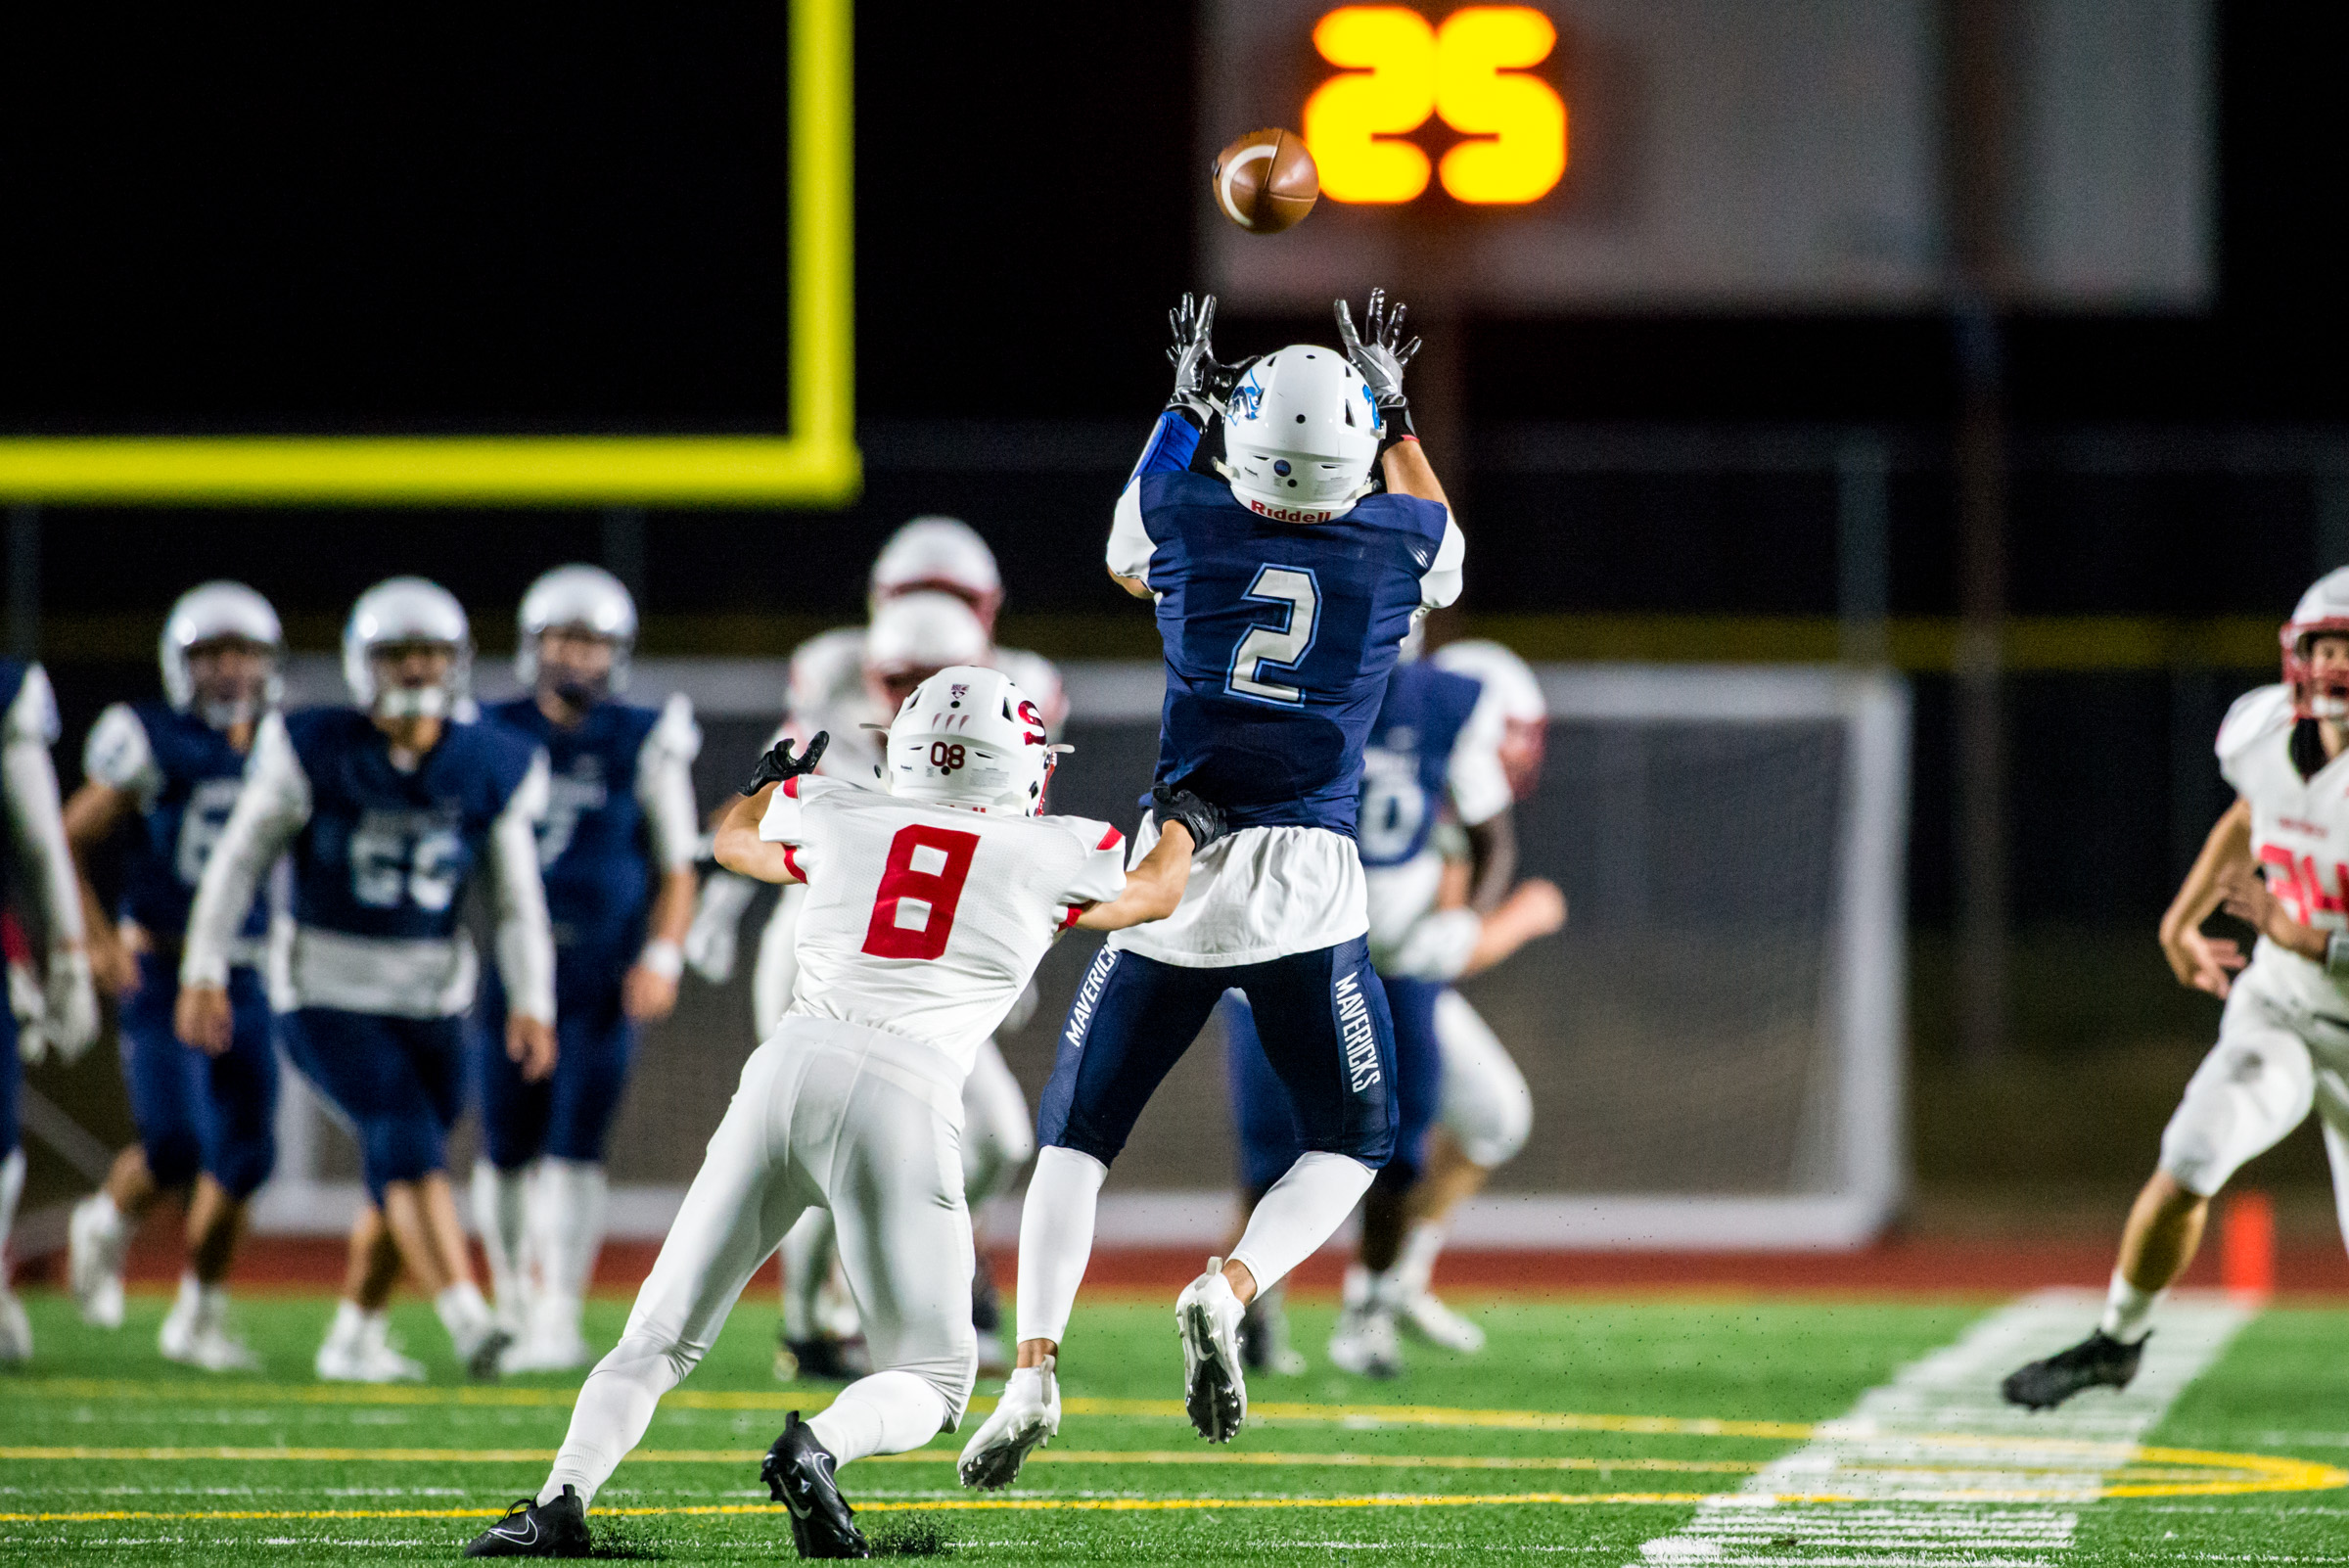 Prep Football Mavericks Roughed Up By Snohomish At Home My